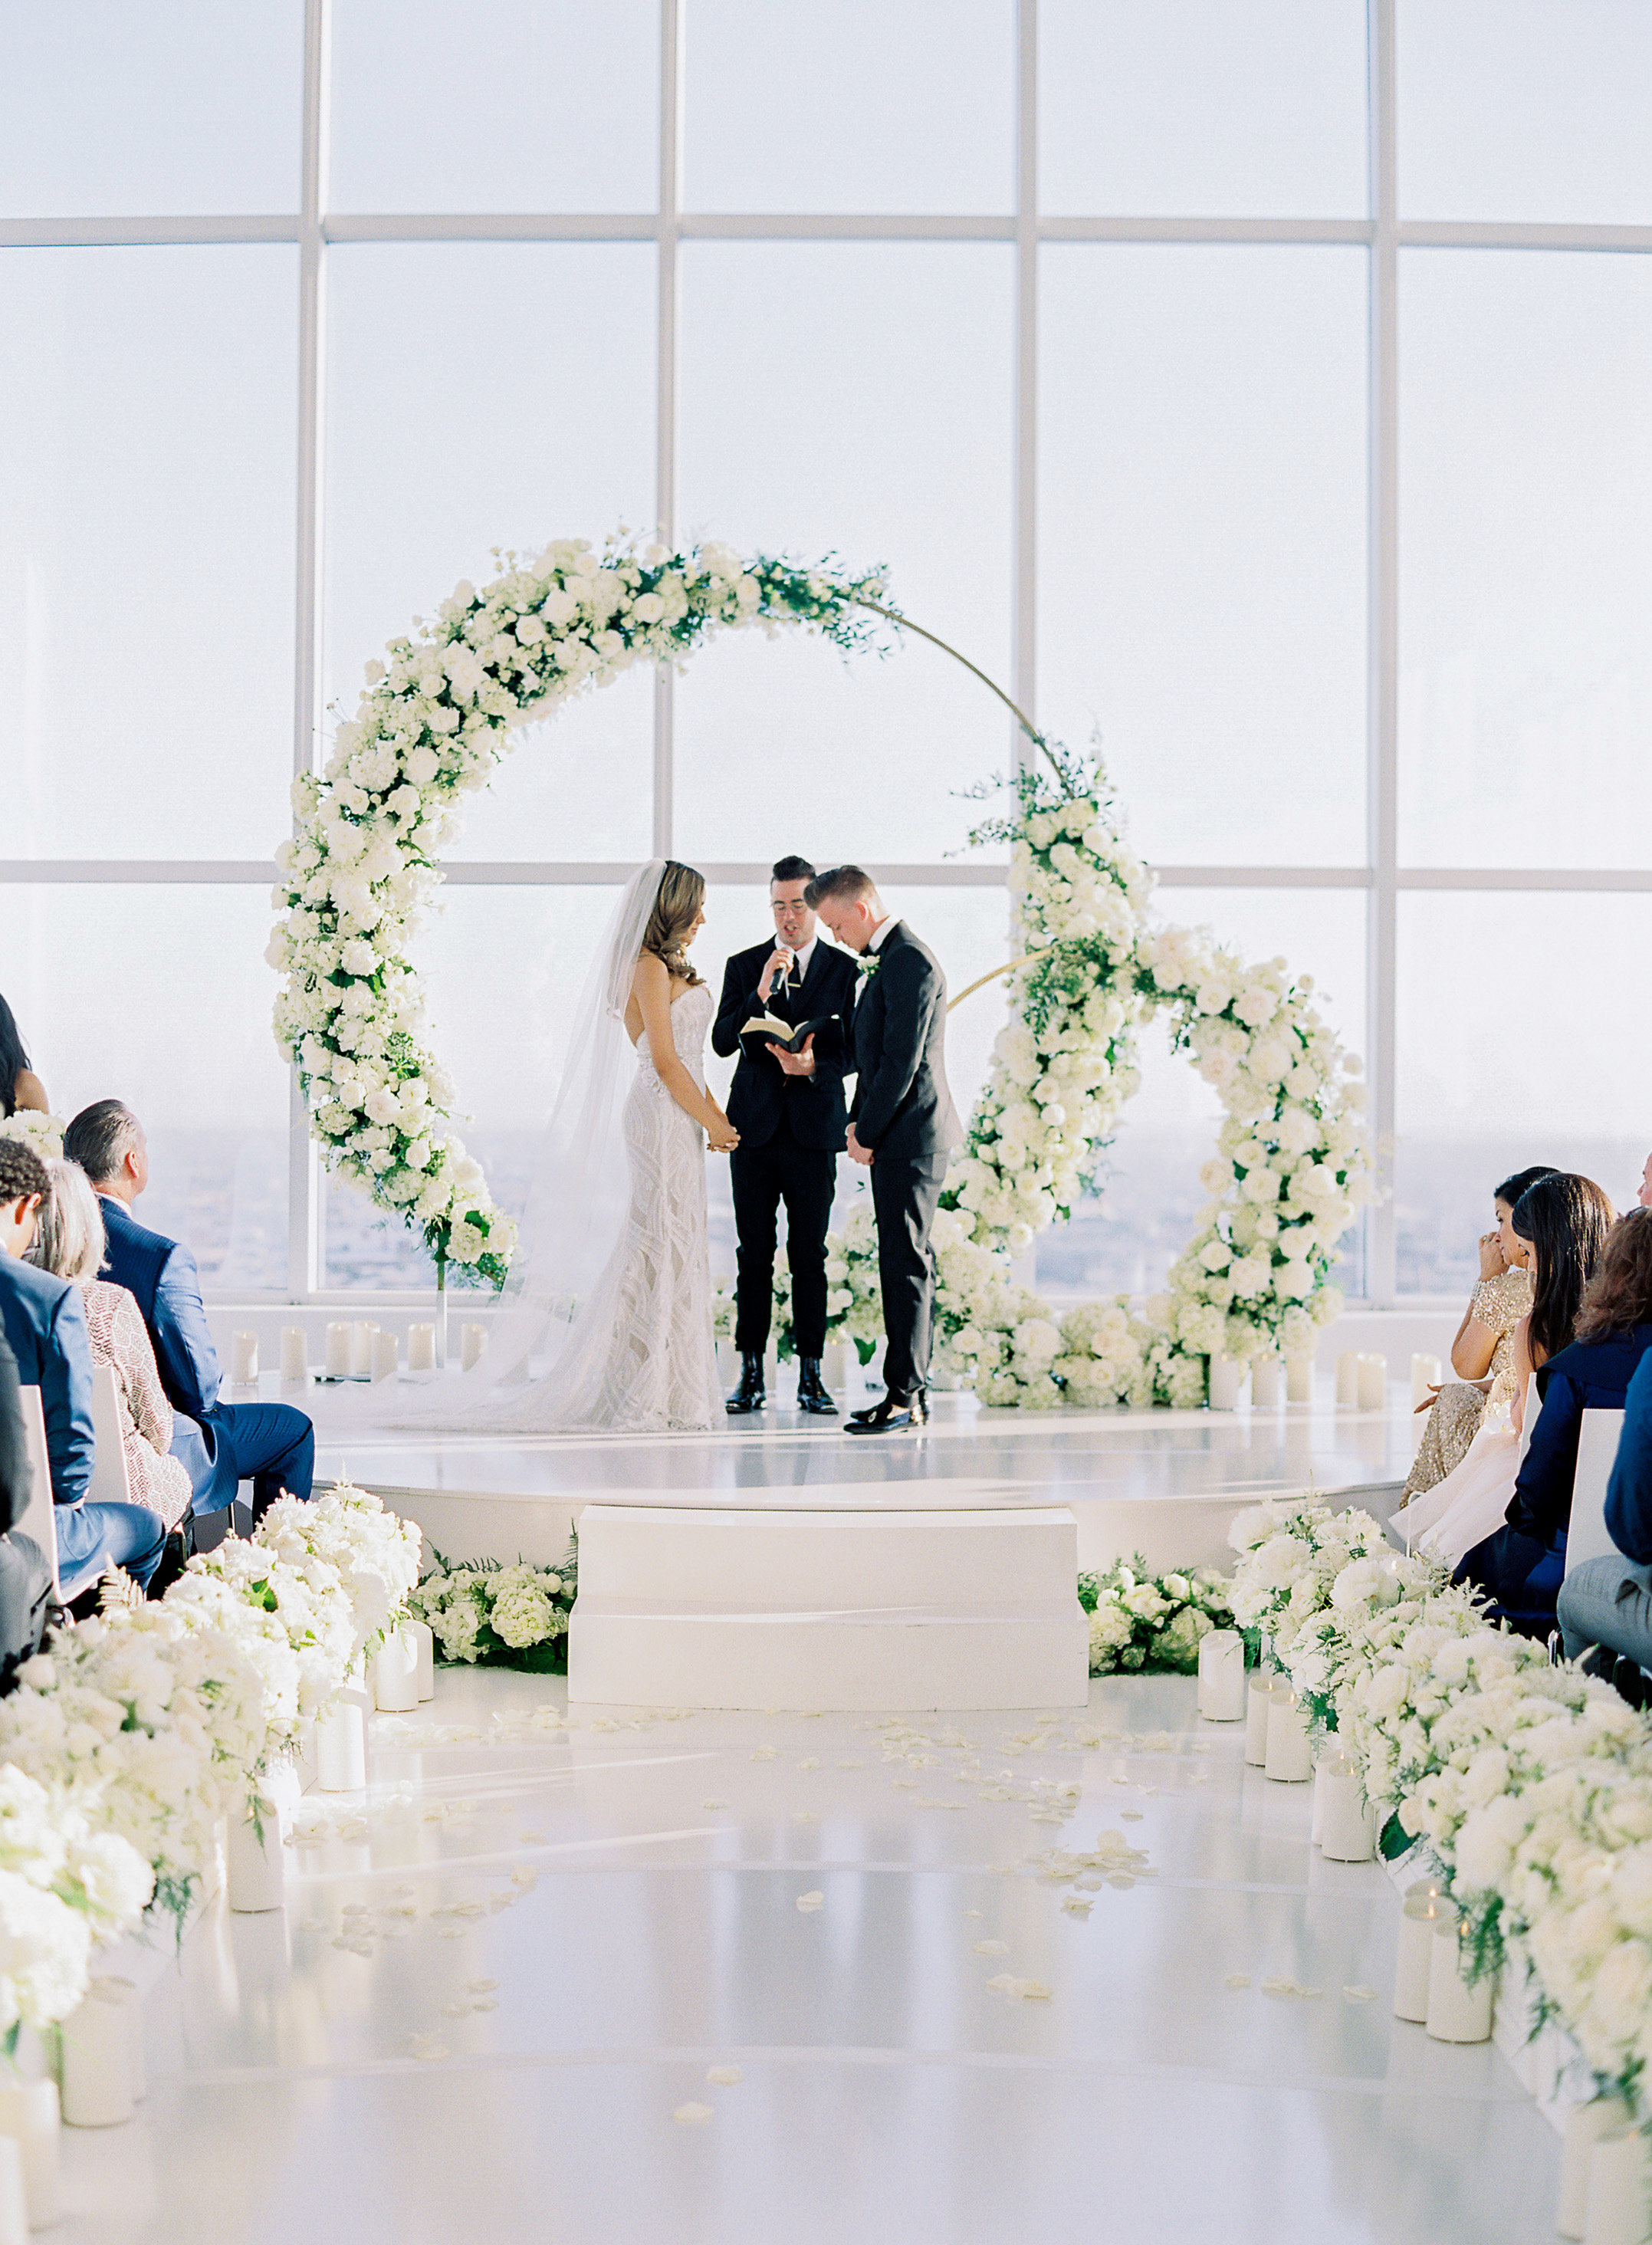 wedding backdrop white floral rings window wall